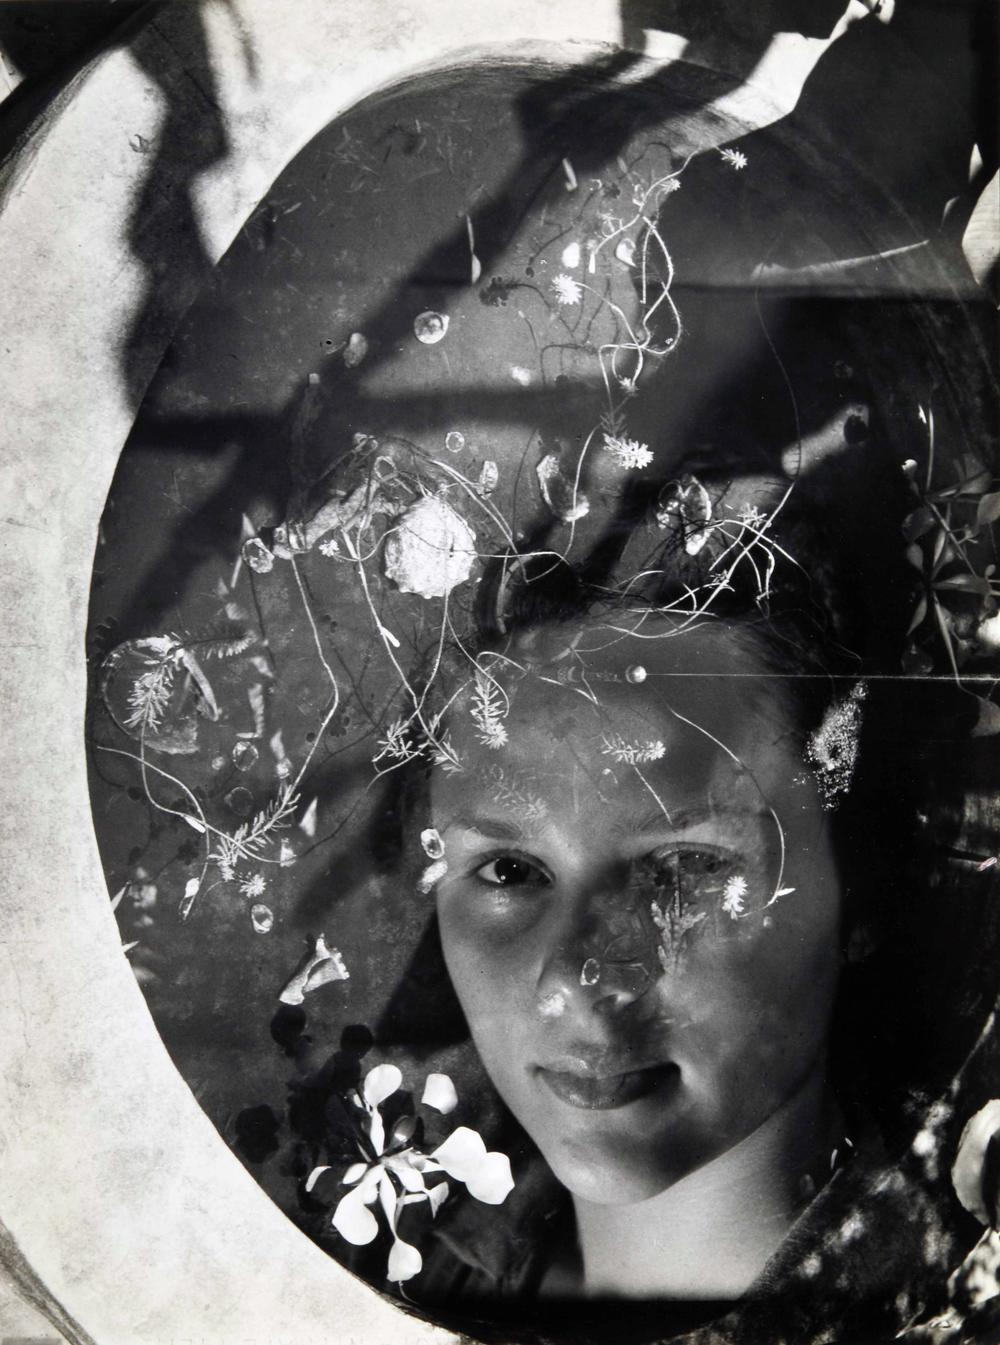 Clarence John Laughlin (American, 1905-1985), Water Witch, 1939, printed 1940, gelatin silver print. High Museum of Art, Atlanta, purchase, 1978.63.